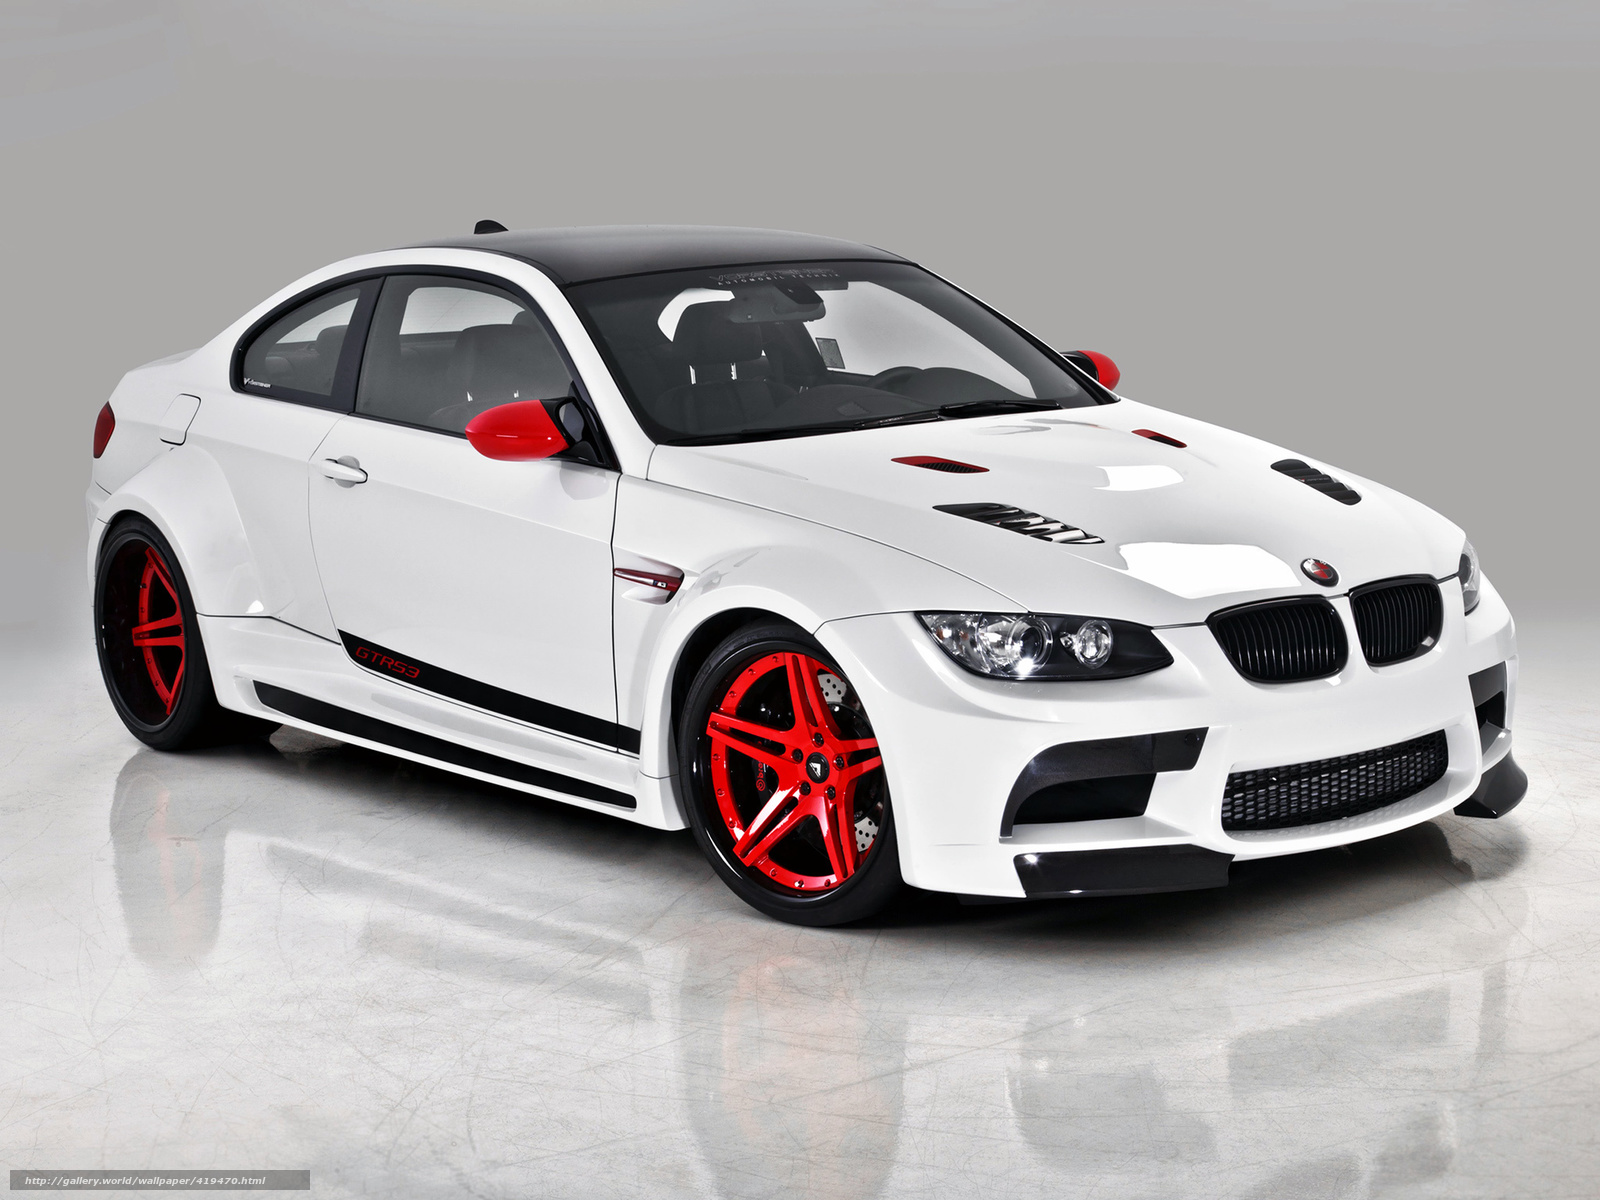 bmw m3 gtrs3 wallpapers-#18